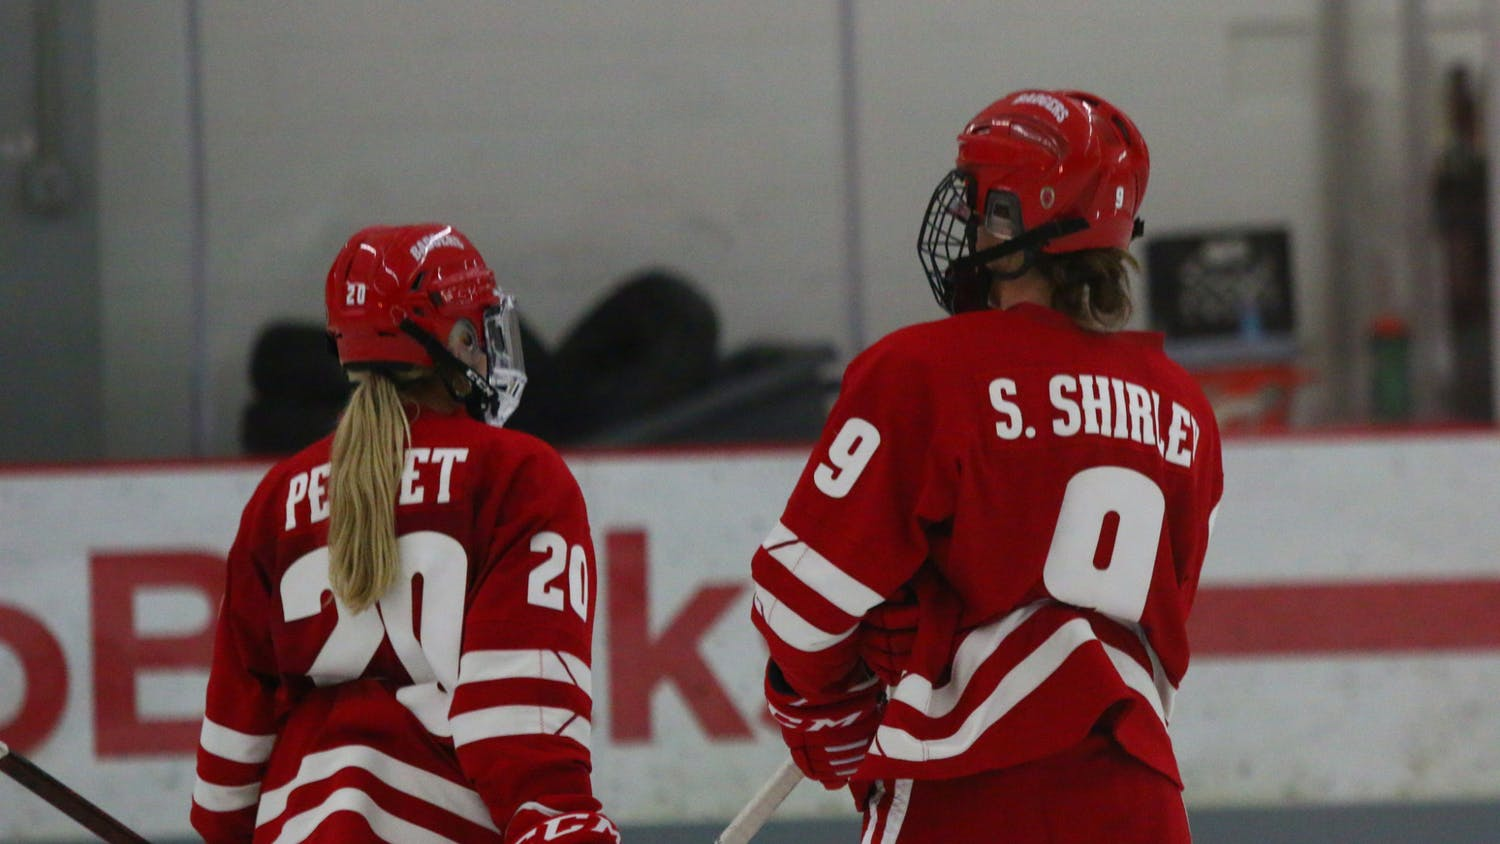 Brette Pettet and Sophie Shirley had three points each as the Badgers beat the Gophers 6-0